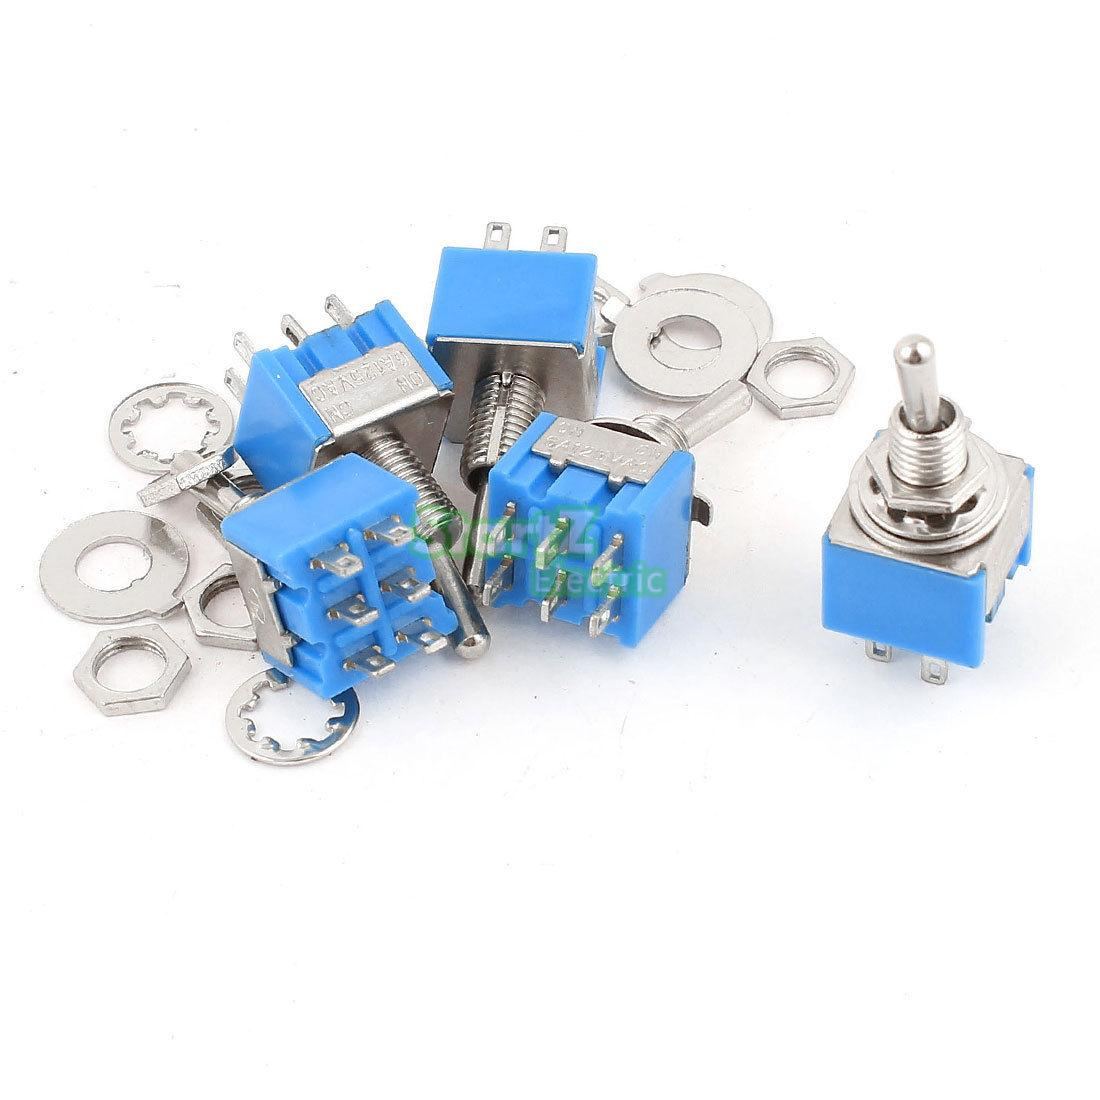 5pcs Dpdt On Off 3 Positions 6 Pin Latching Miniature Toggle 2 Way Switch Aeproductgetsubject